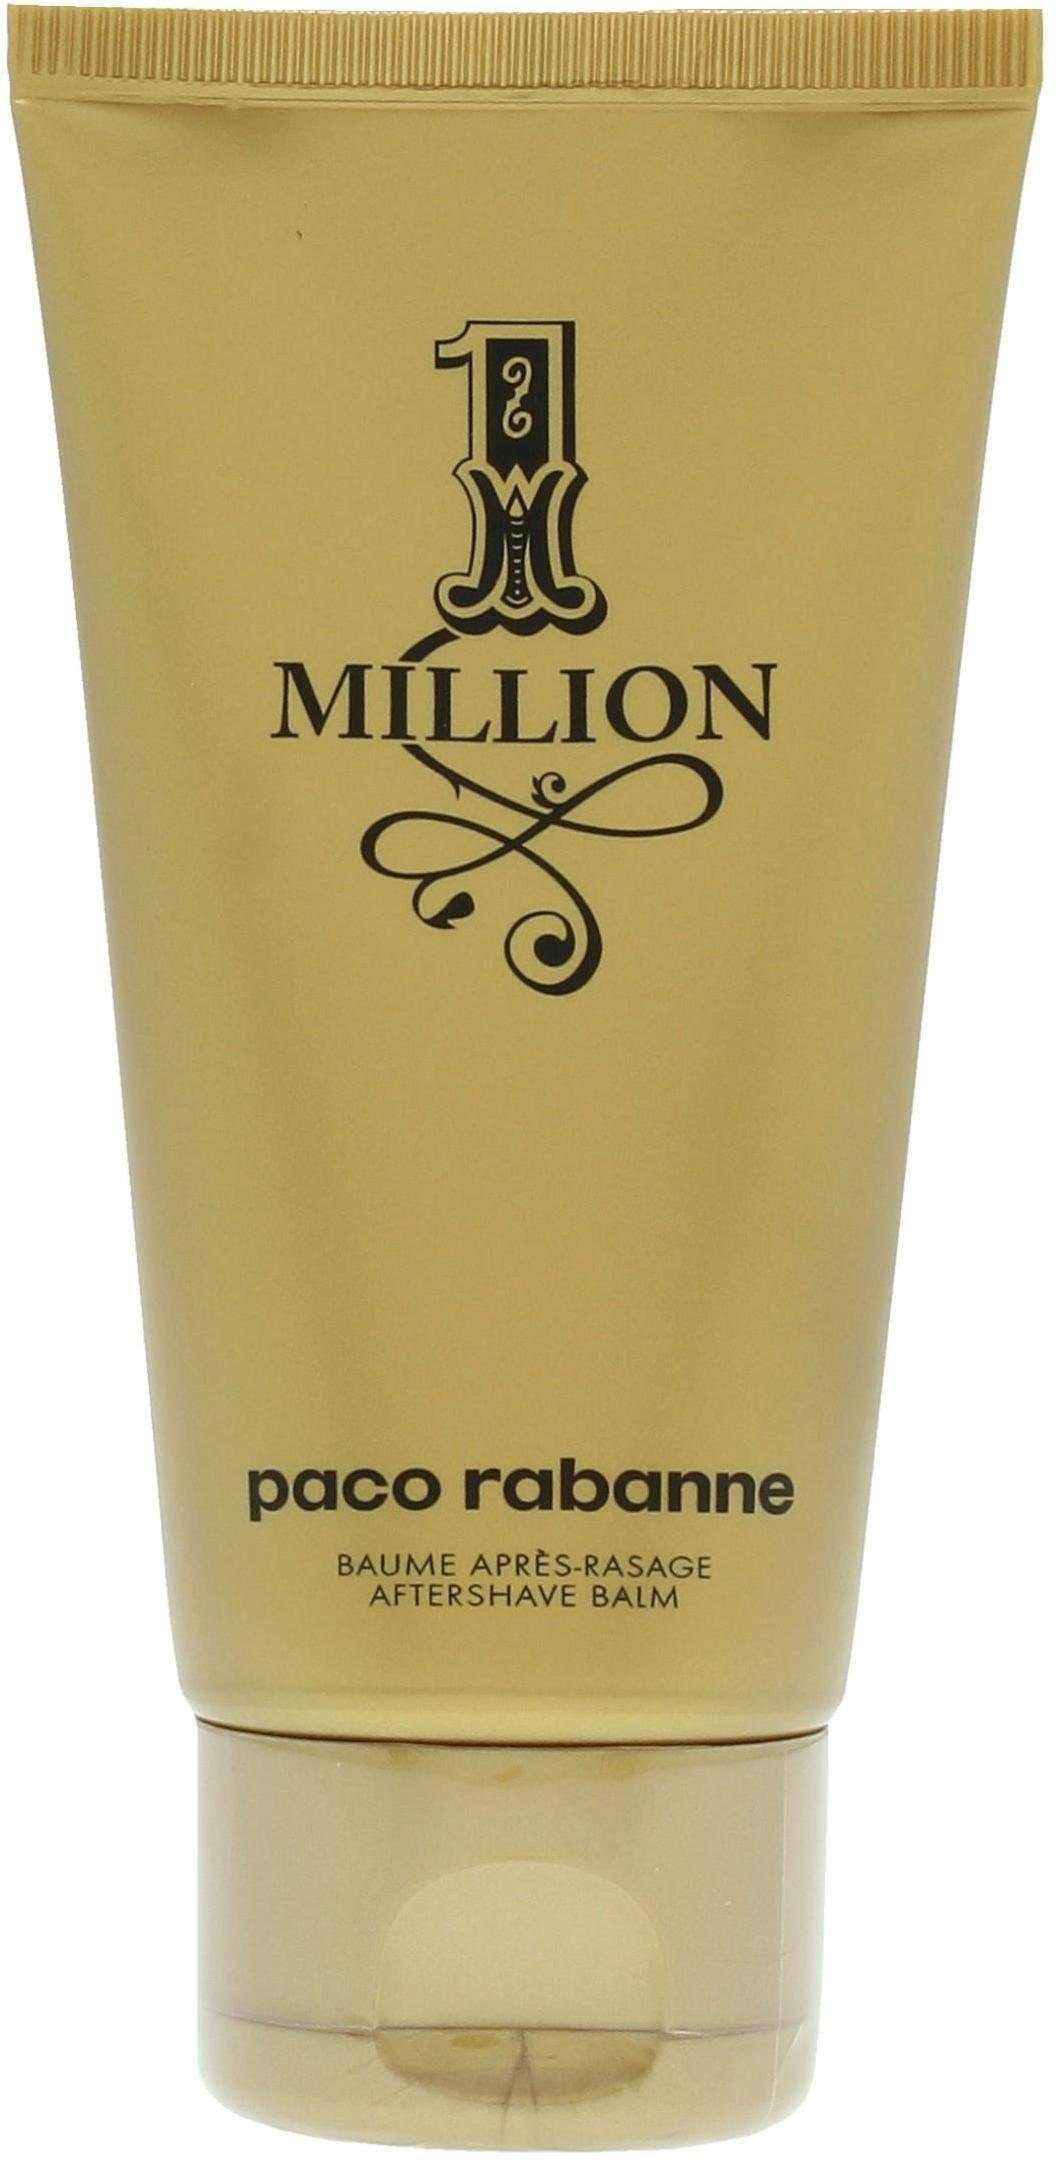 Paco Rabanne, »1 Million«, Aftershave